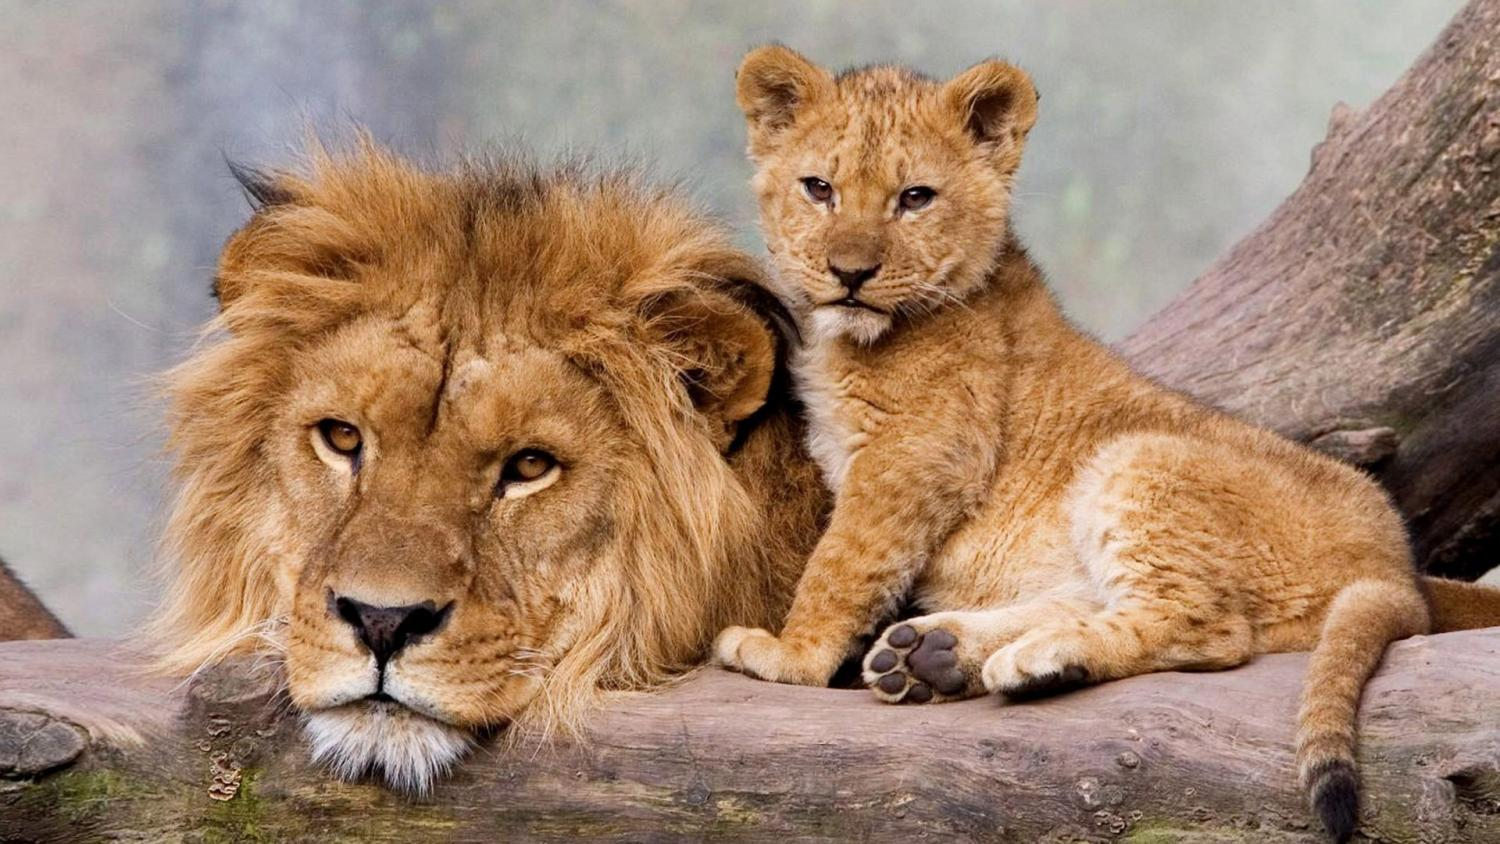 A male lion and a cub